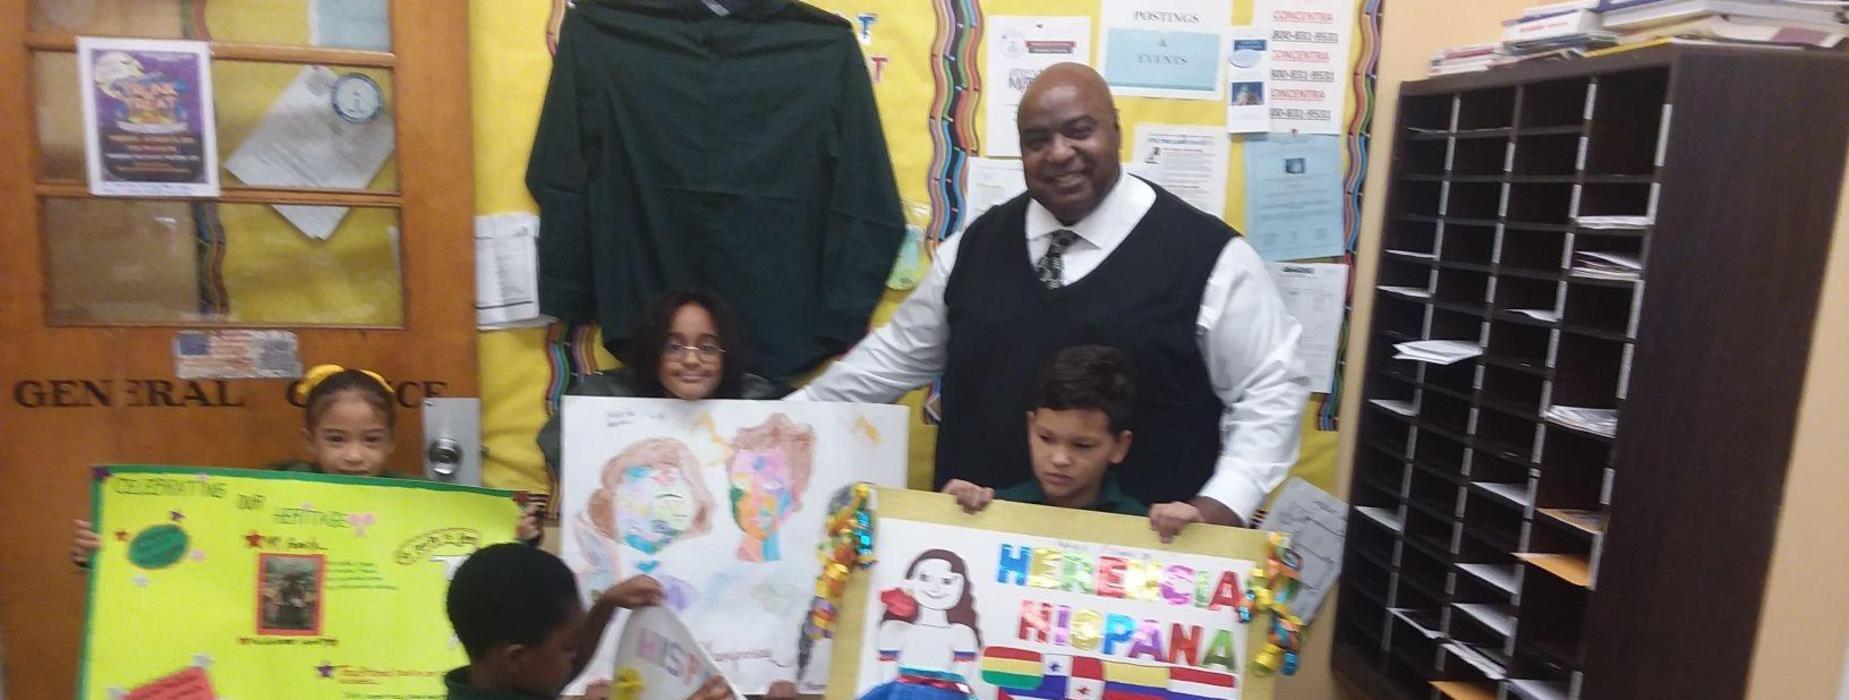 PS 12 Hispanic Heritage